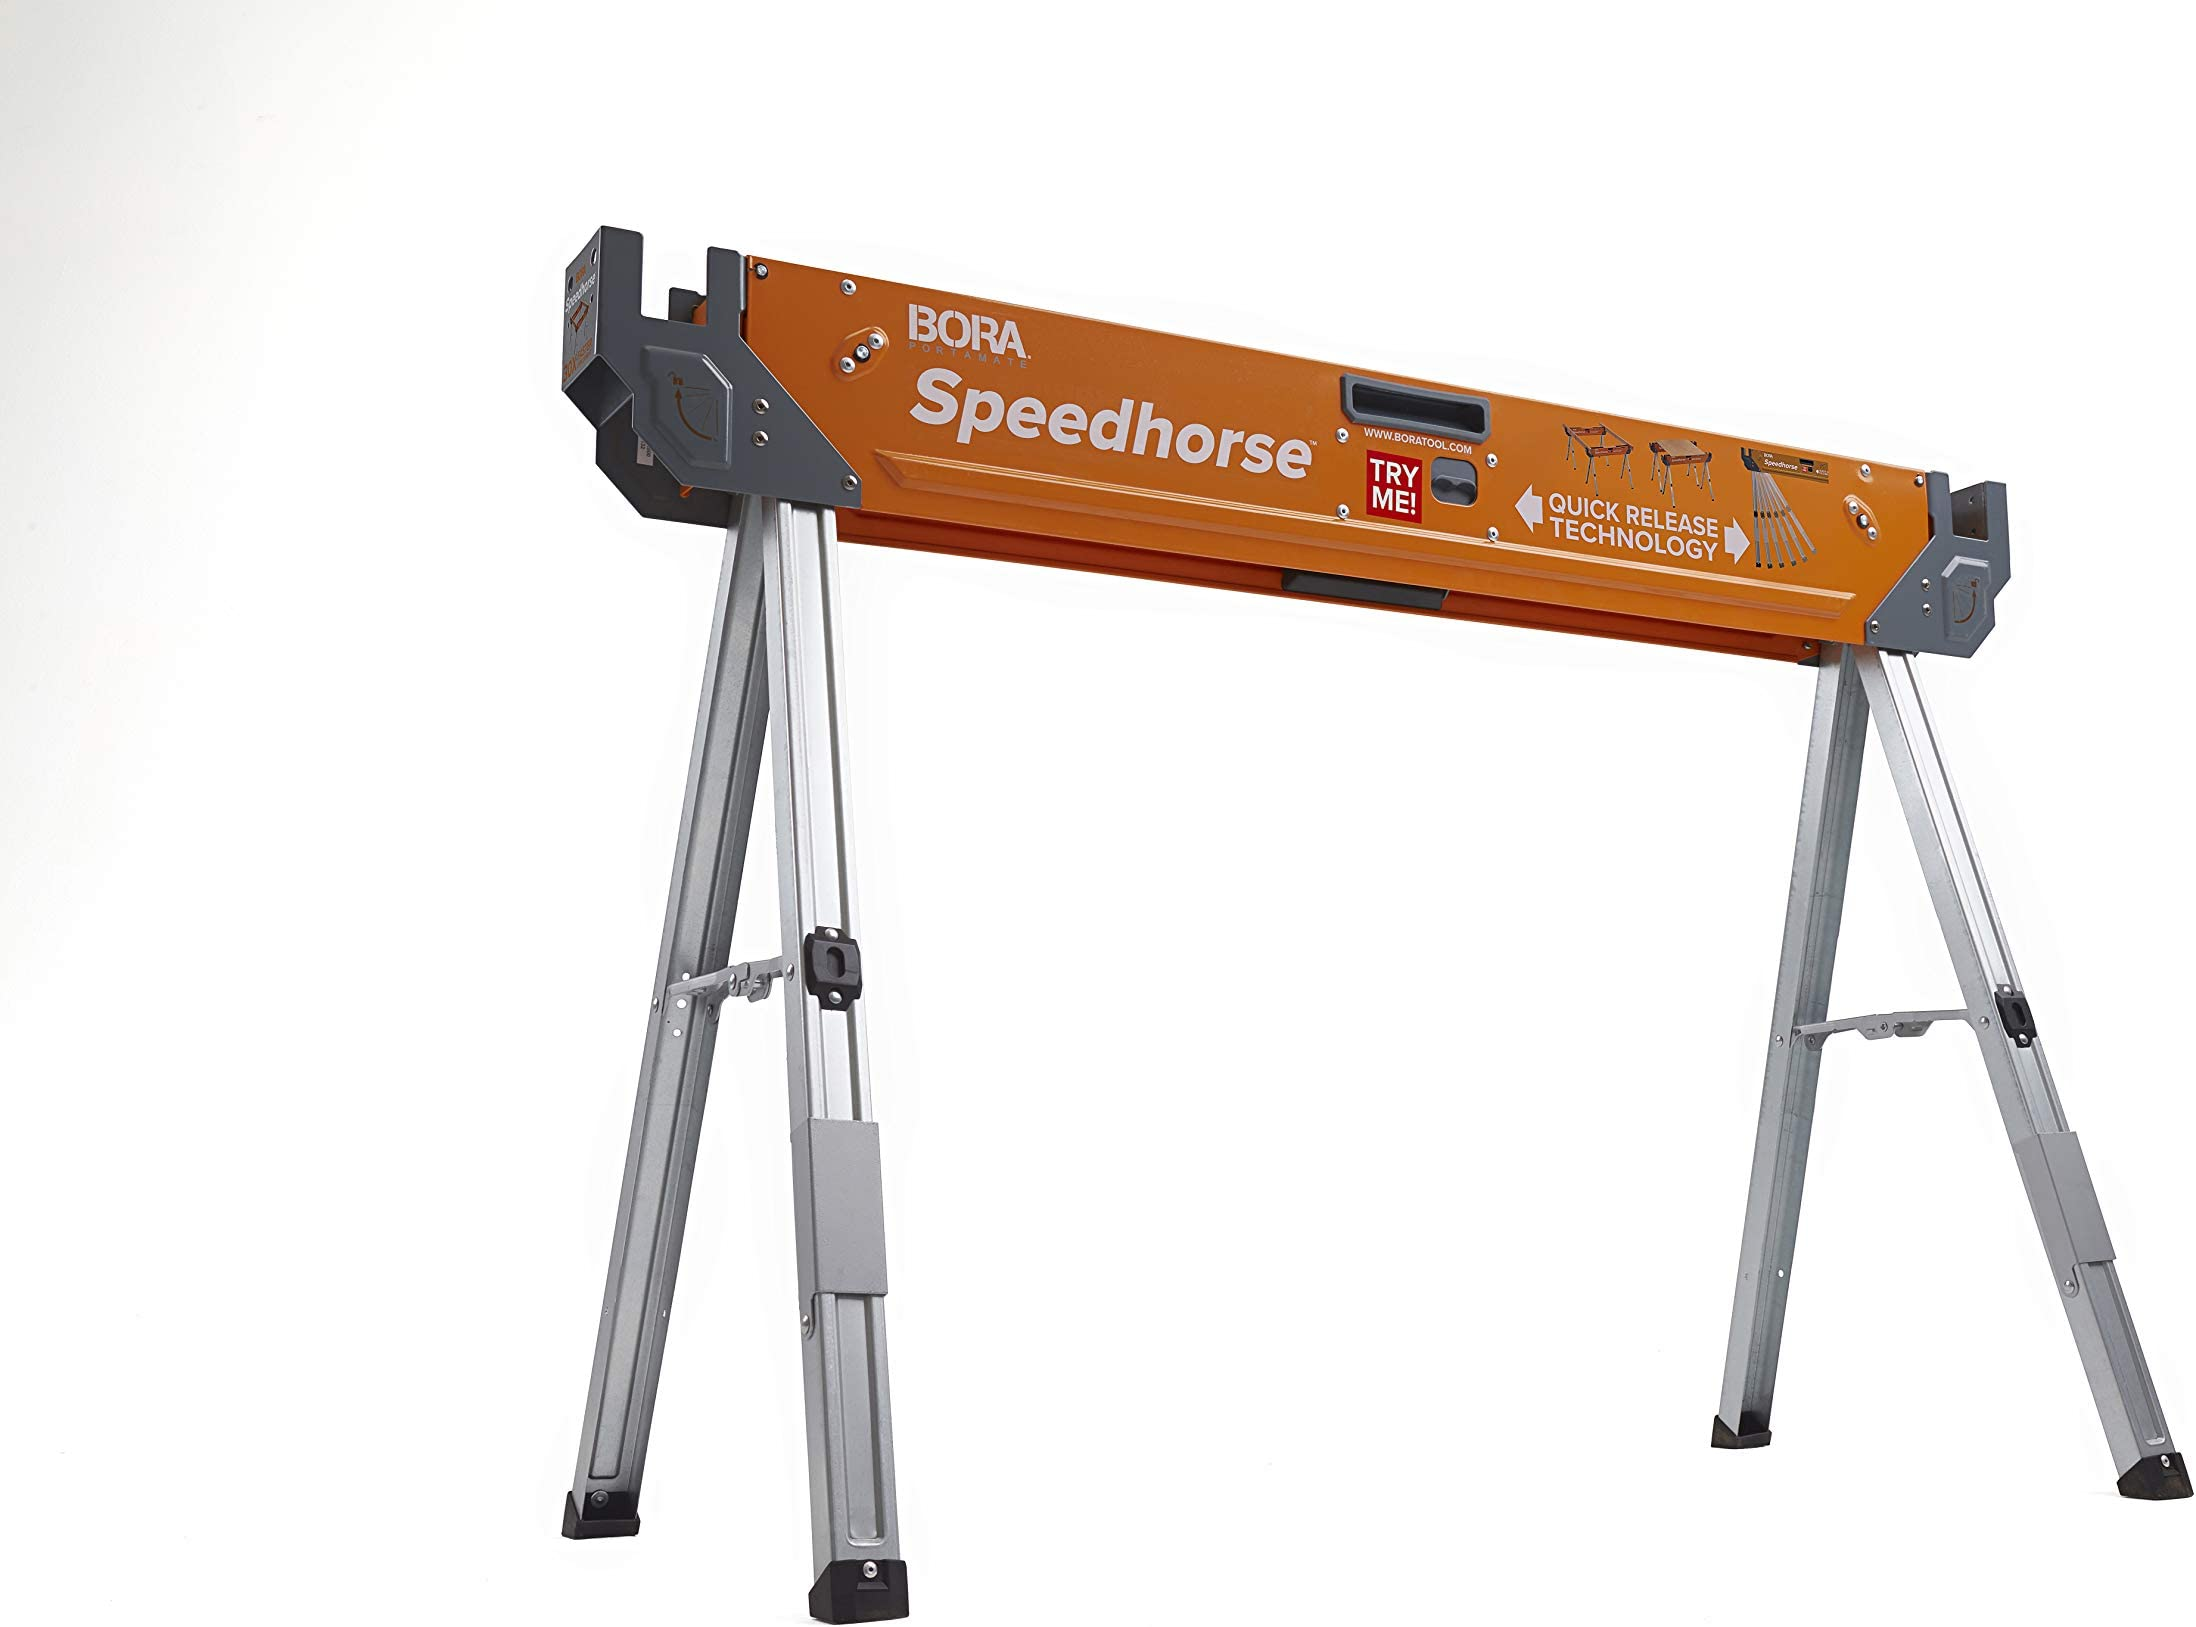 Deals on Bora Portamate Speedhorse Sawhorse PM-450